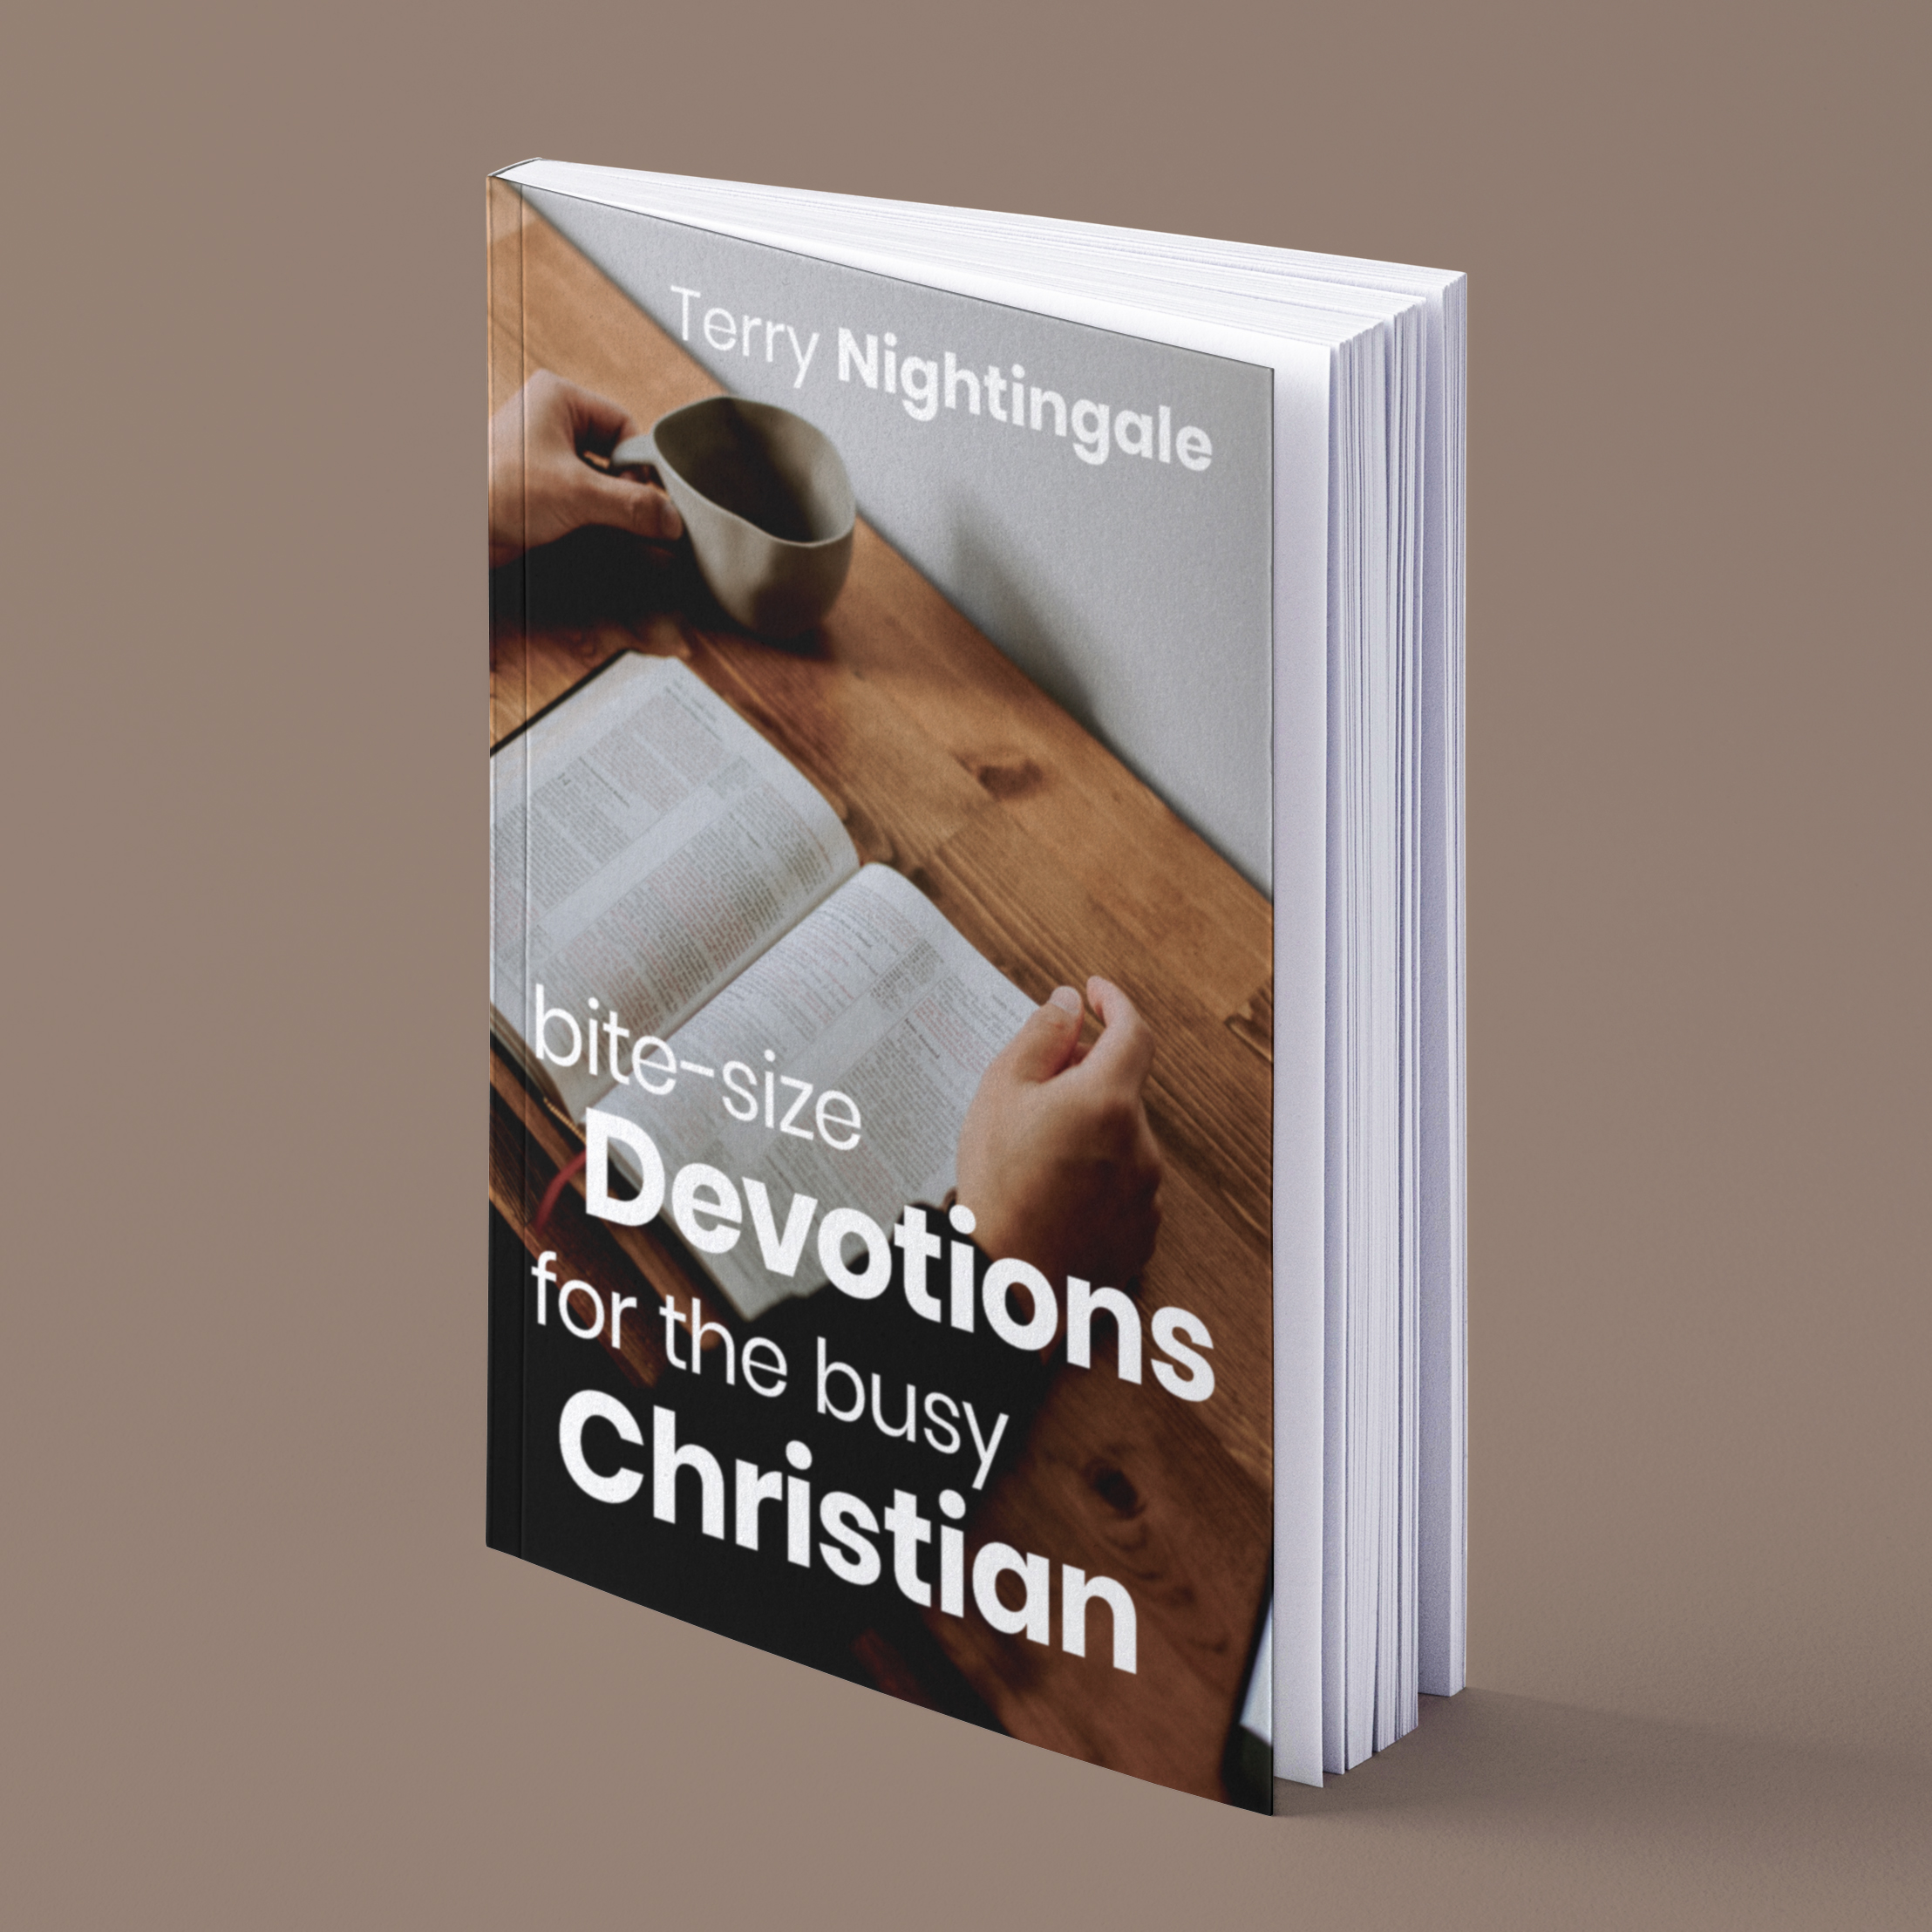 Christian Writer and Blogger Authors Bite-size Devotions for Busy Christians